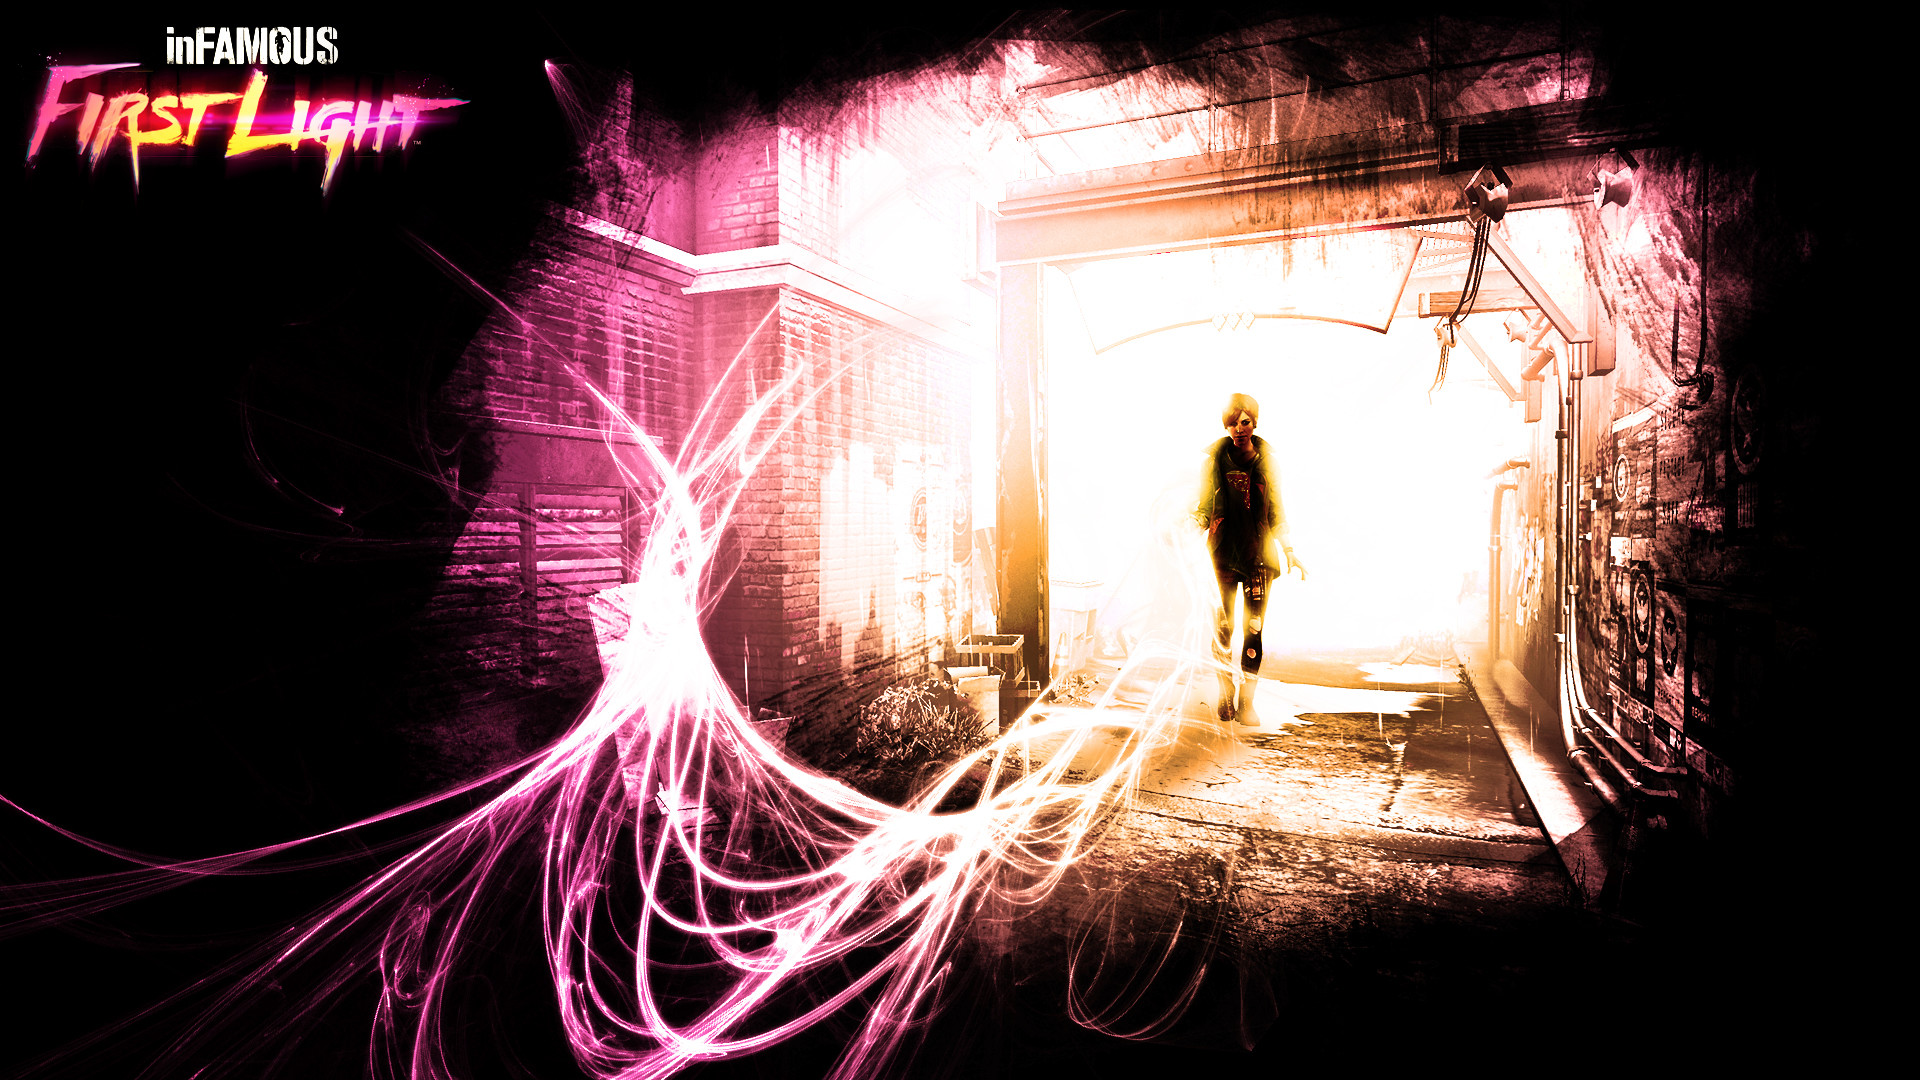 1920x1080 inFAMOUS: First Light HD Wallpaper 14 - 1920 X 1080